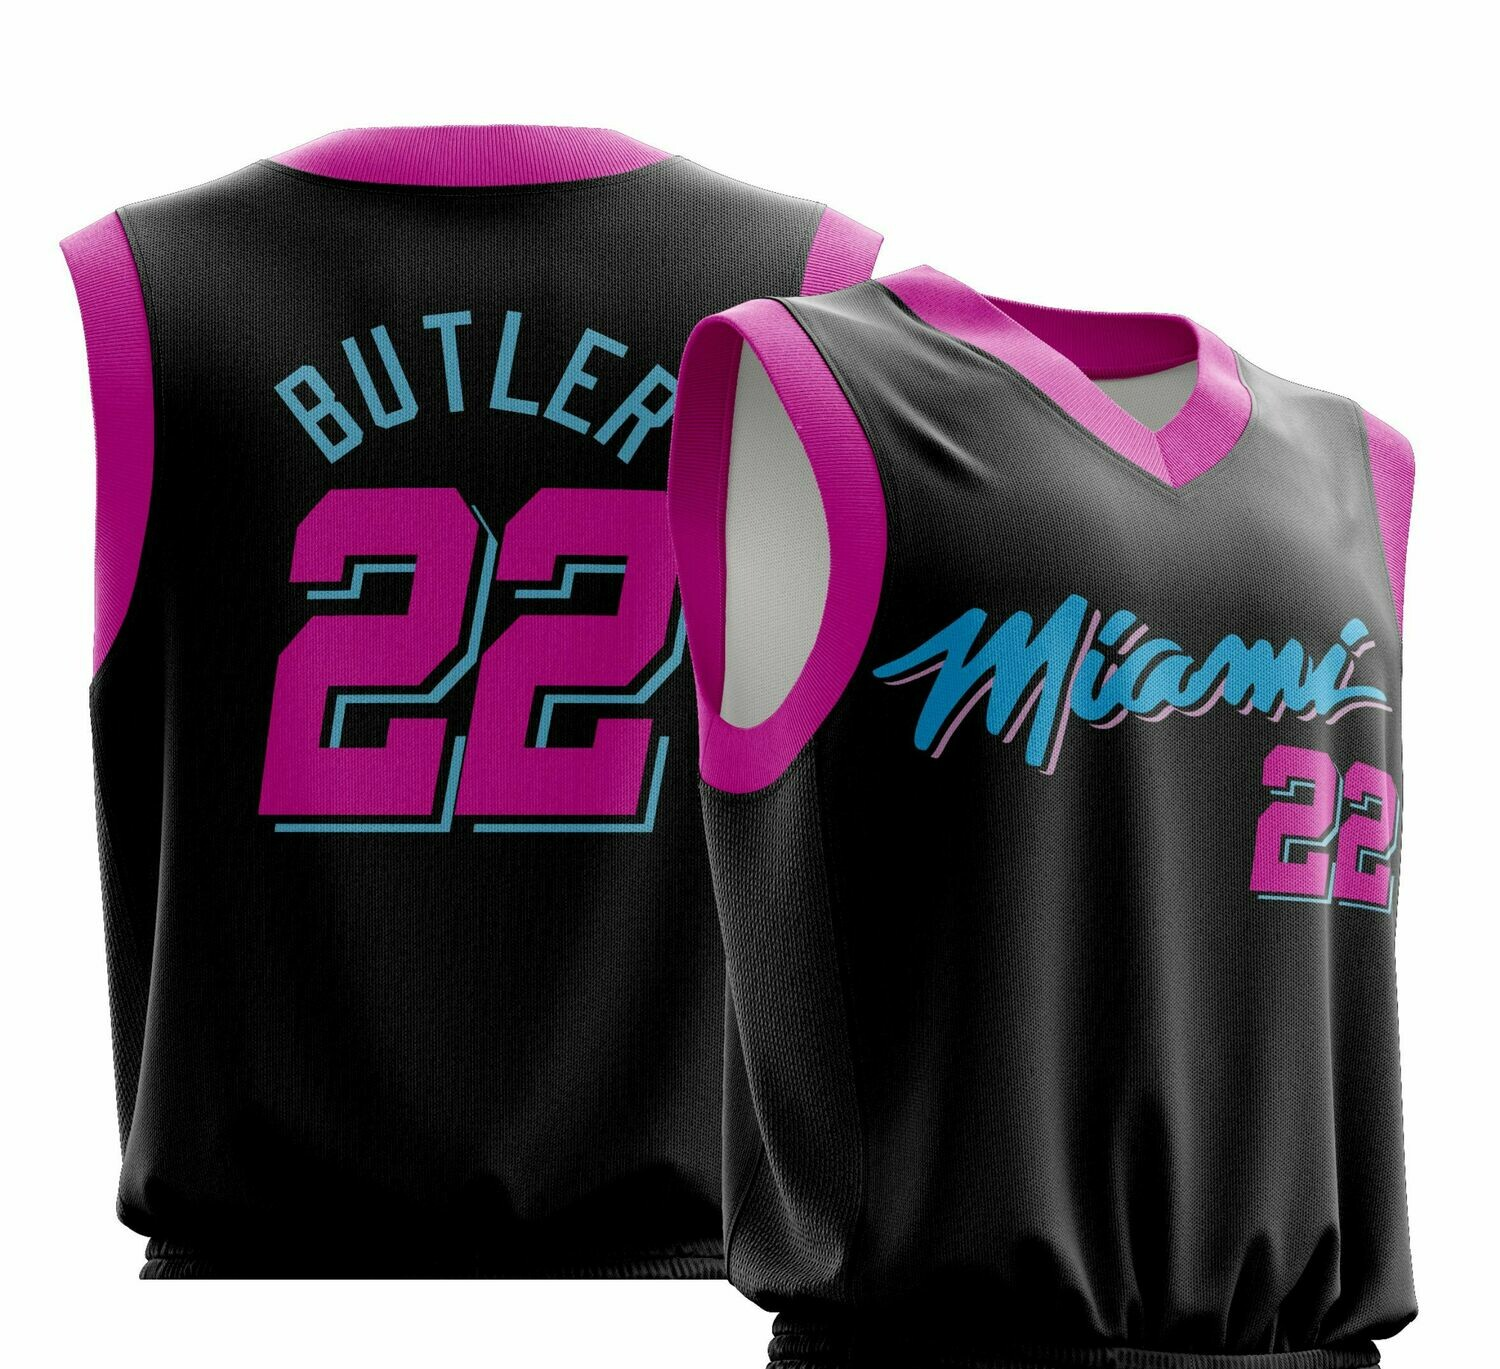 Butler City Black pink  Jersey